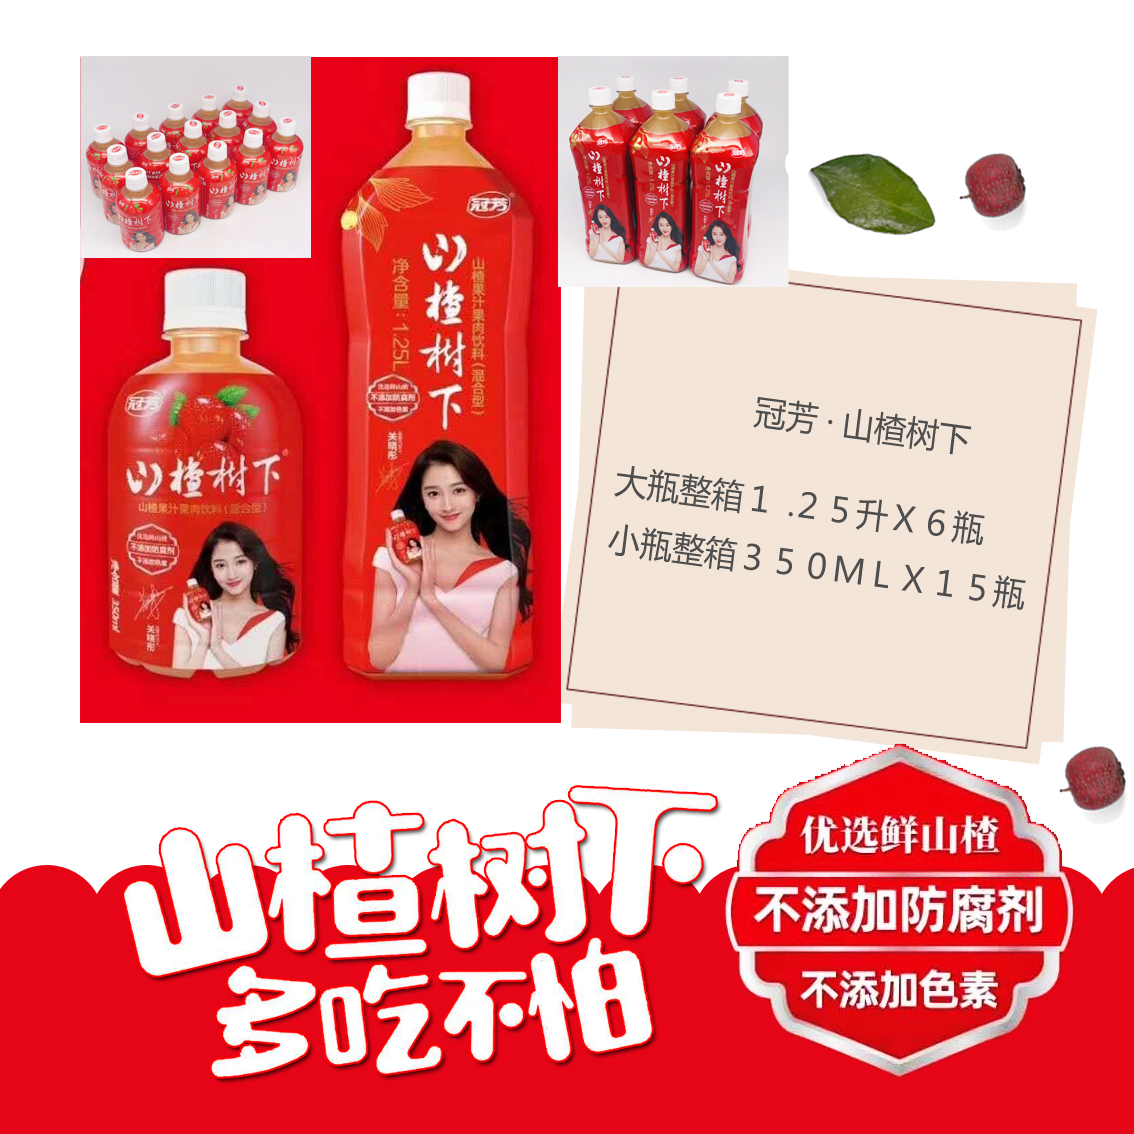 Juice drink 350ml * 15 bottles / whole box of Hawthorn non pigment preservative food package 1.25 * 6 bottles